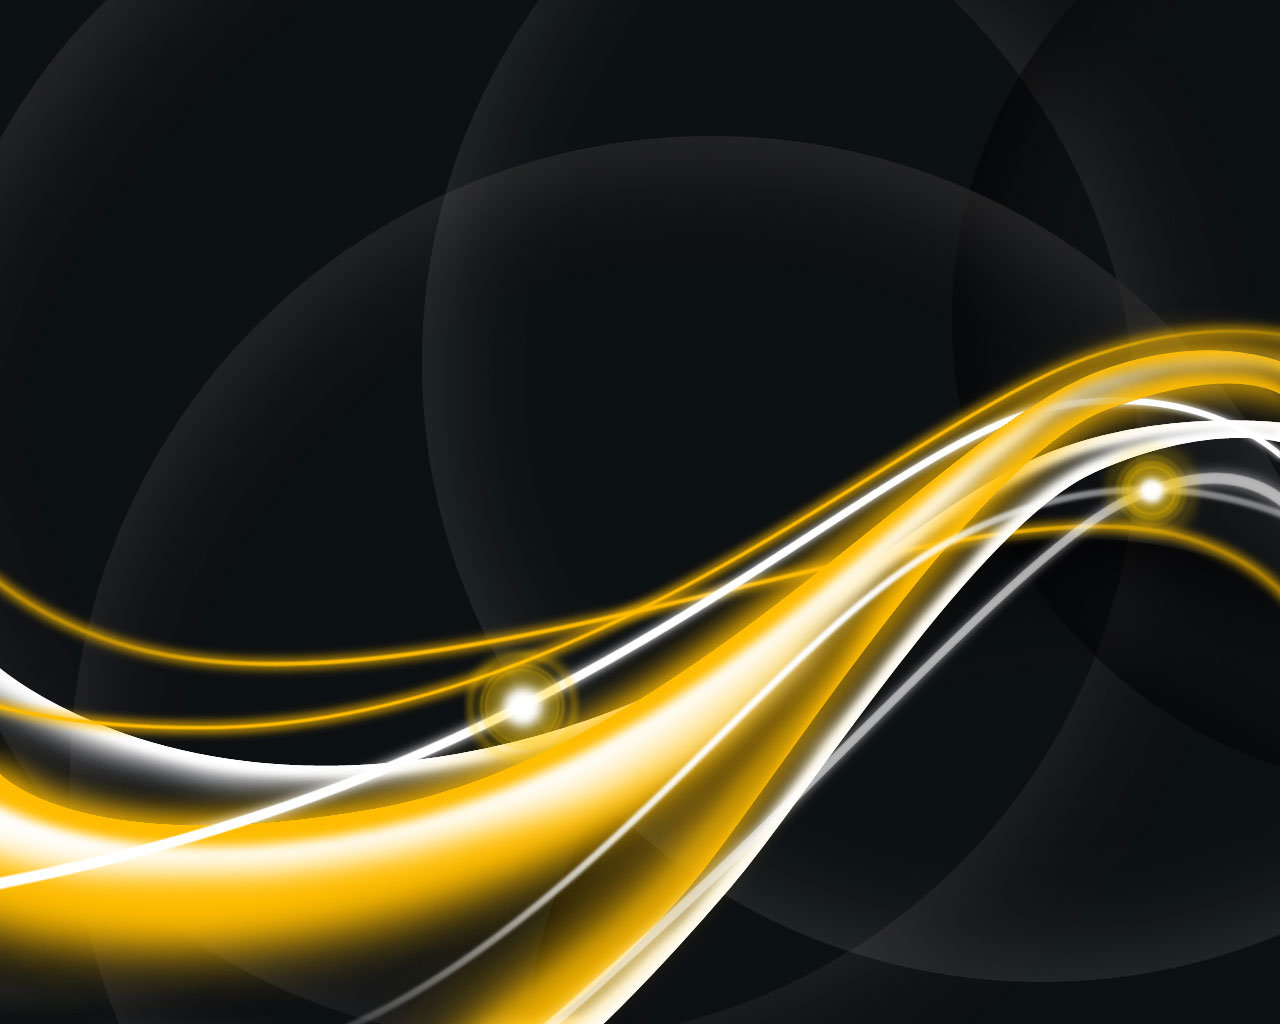 Gold Abstract Wallpapers 1280x1024 Desktop Backgrounds